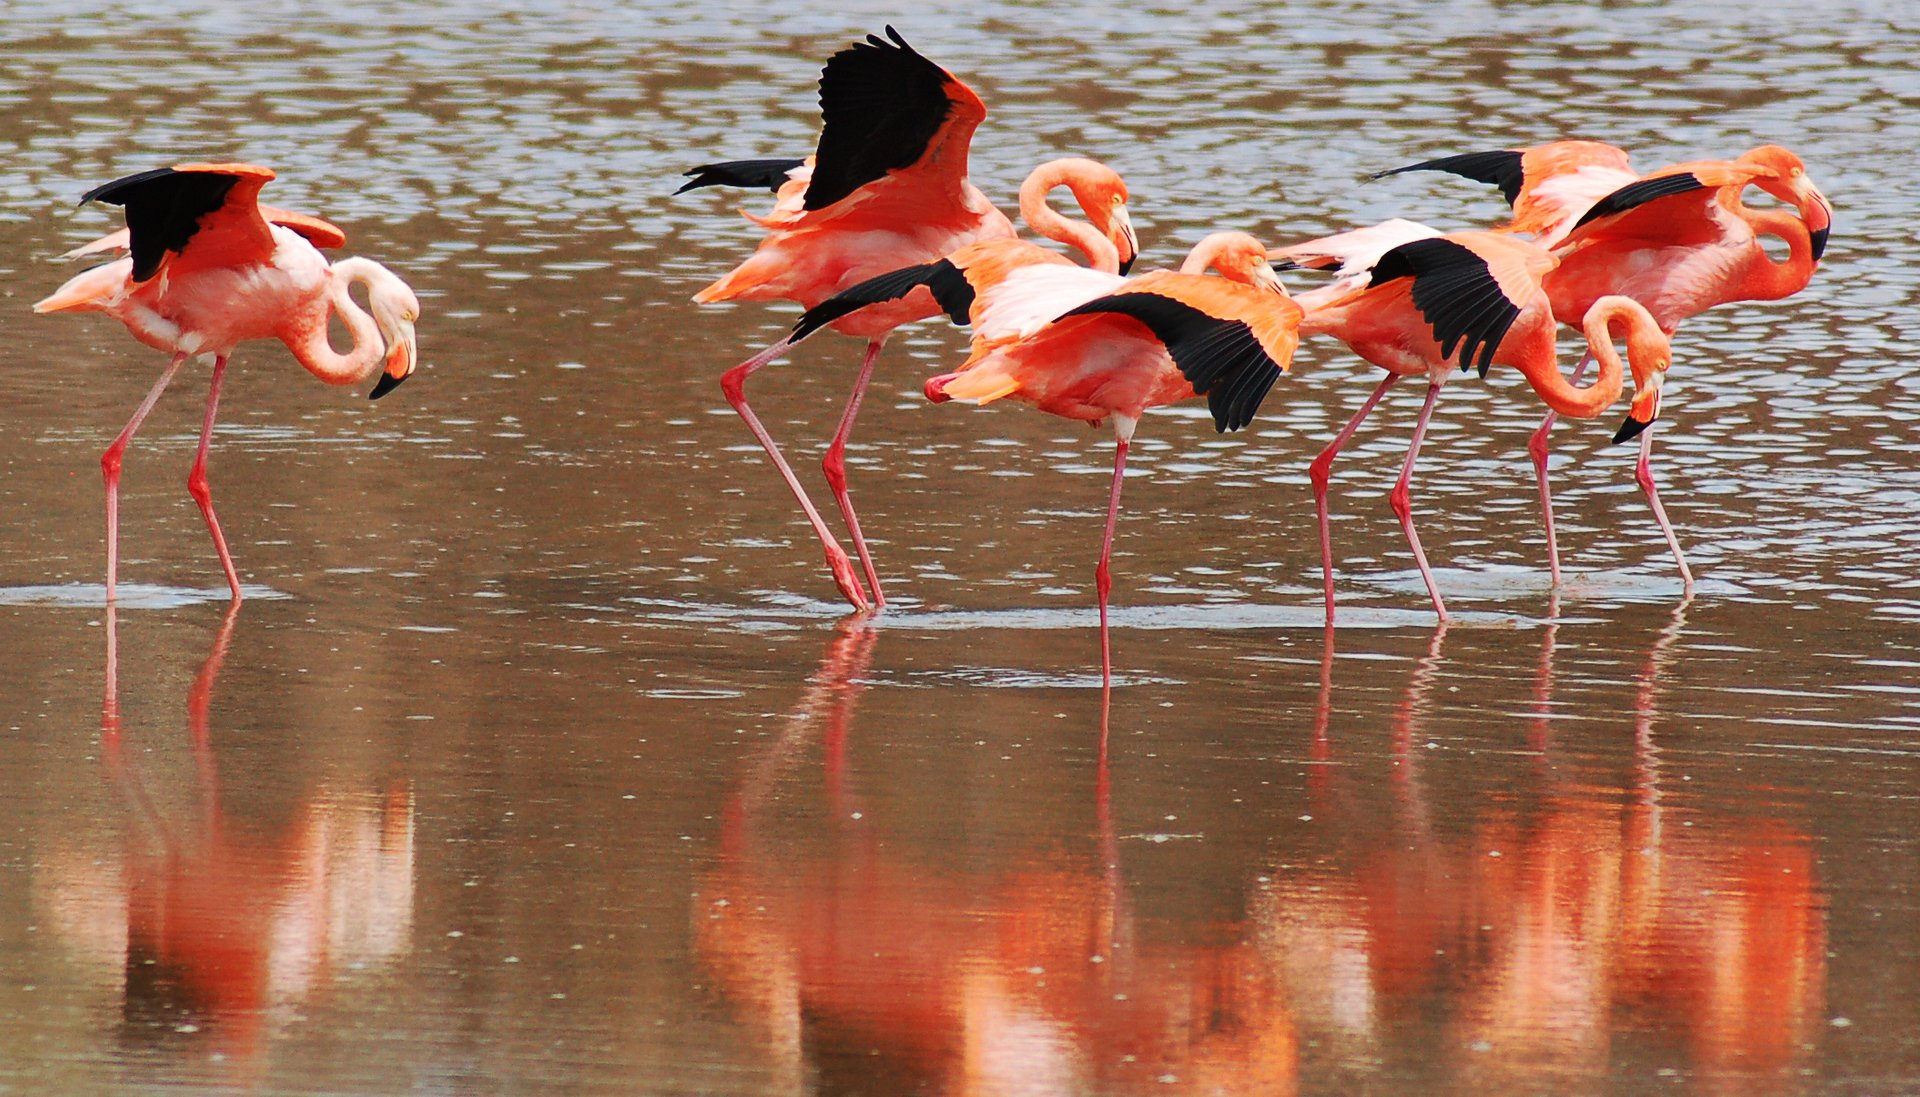 Galapagos Flamingos Courtship Dances in Galapagos Islands 2019 - Best Time